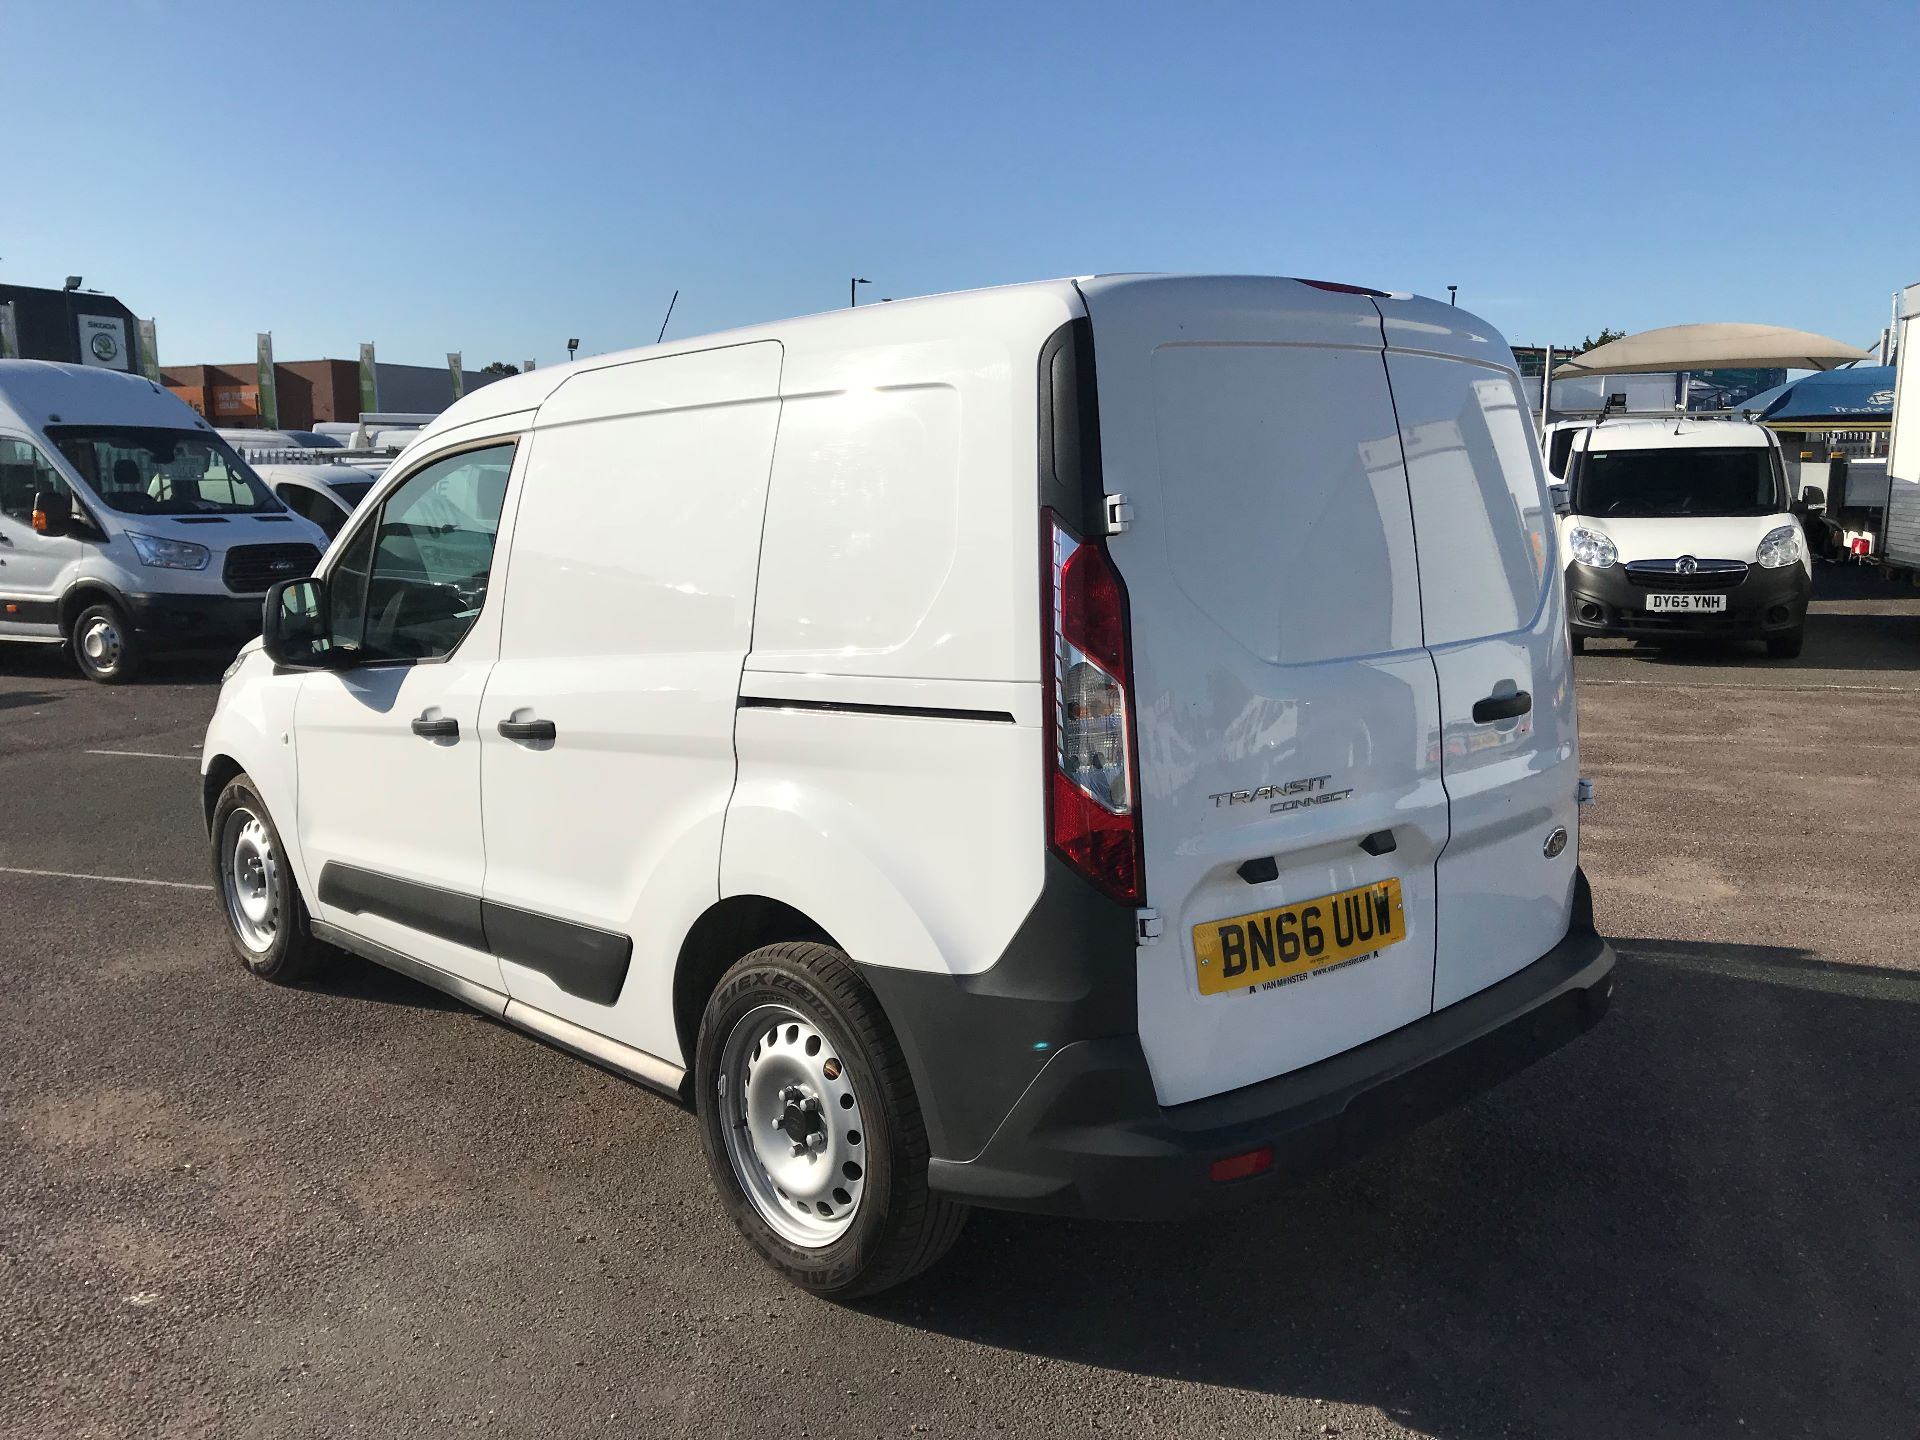 2016 Ford Transit Connect  200 L1 1.6 TDCI 75PS EURO 5 (BN66UUW) Image 5